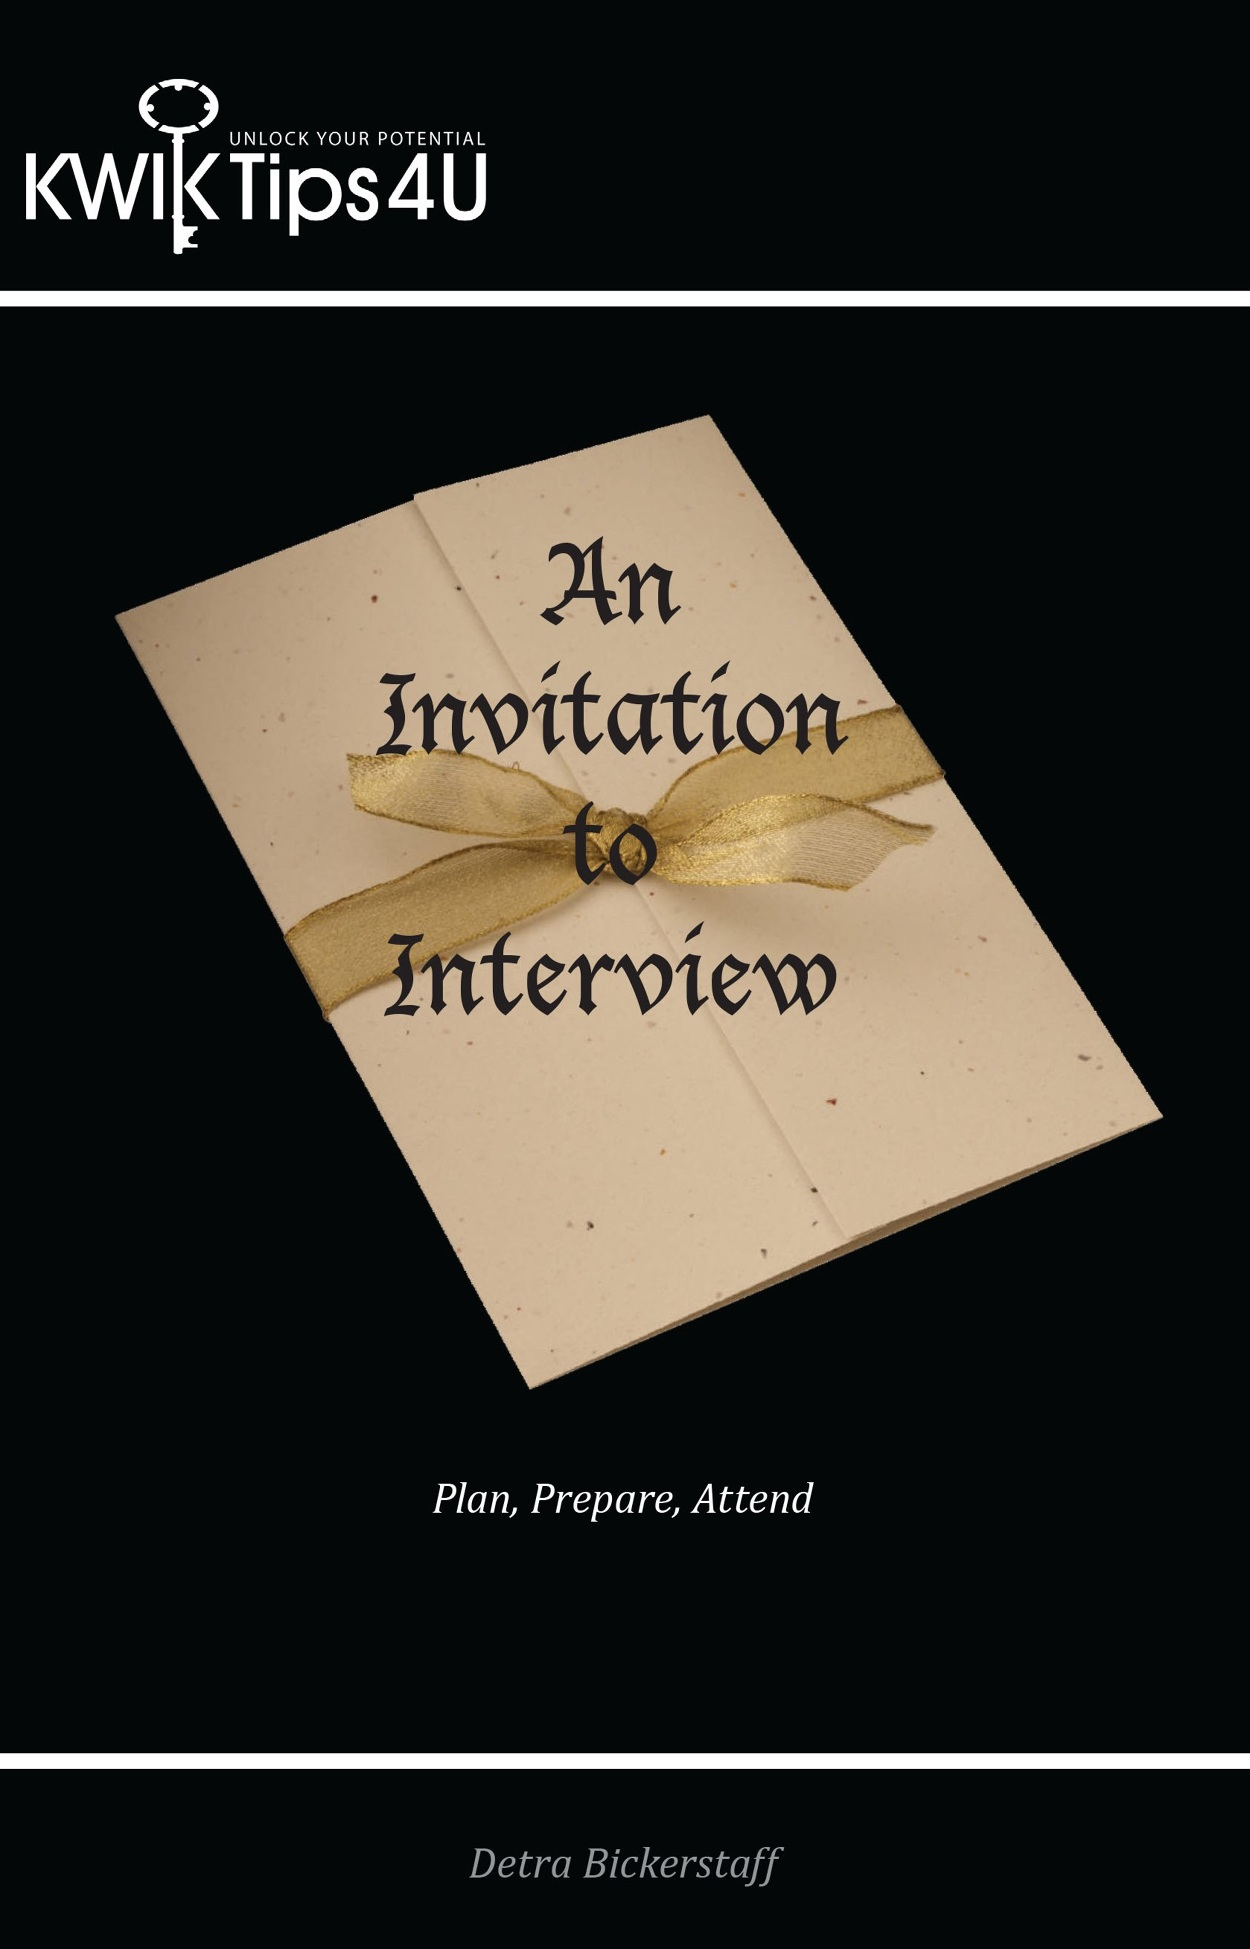 an invitation to interview g publishing inc after applying for several positions you received the phone call you ve been waiting for an invitation to interview this is exciting